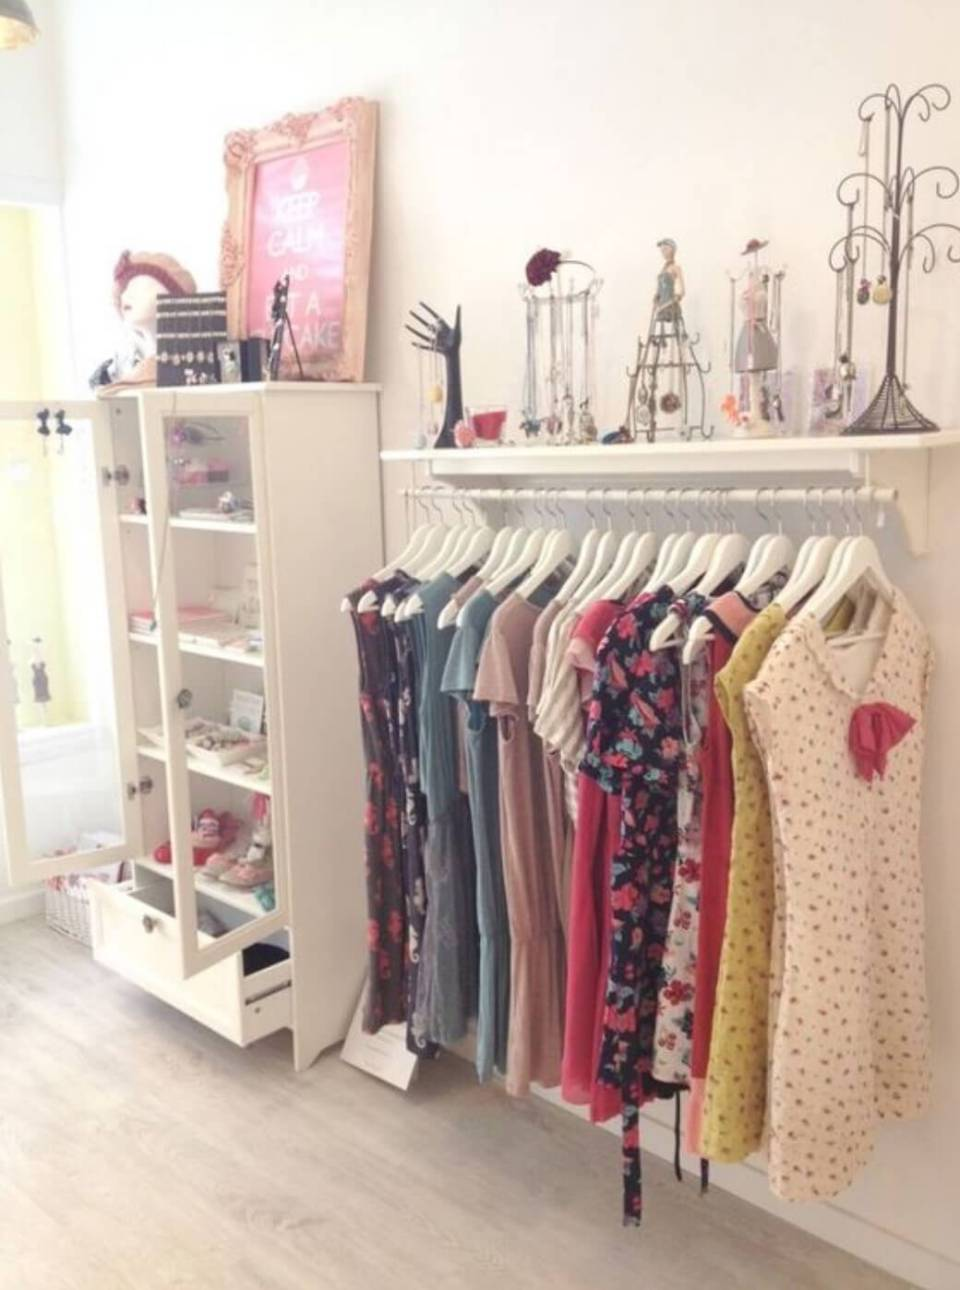 Wardrobe made with a wooden shelf and a low tube fixing to the wall with hanging dresses.